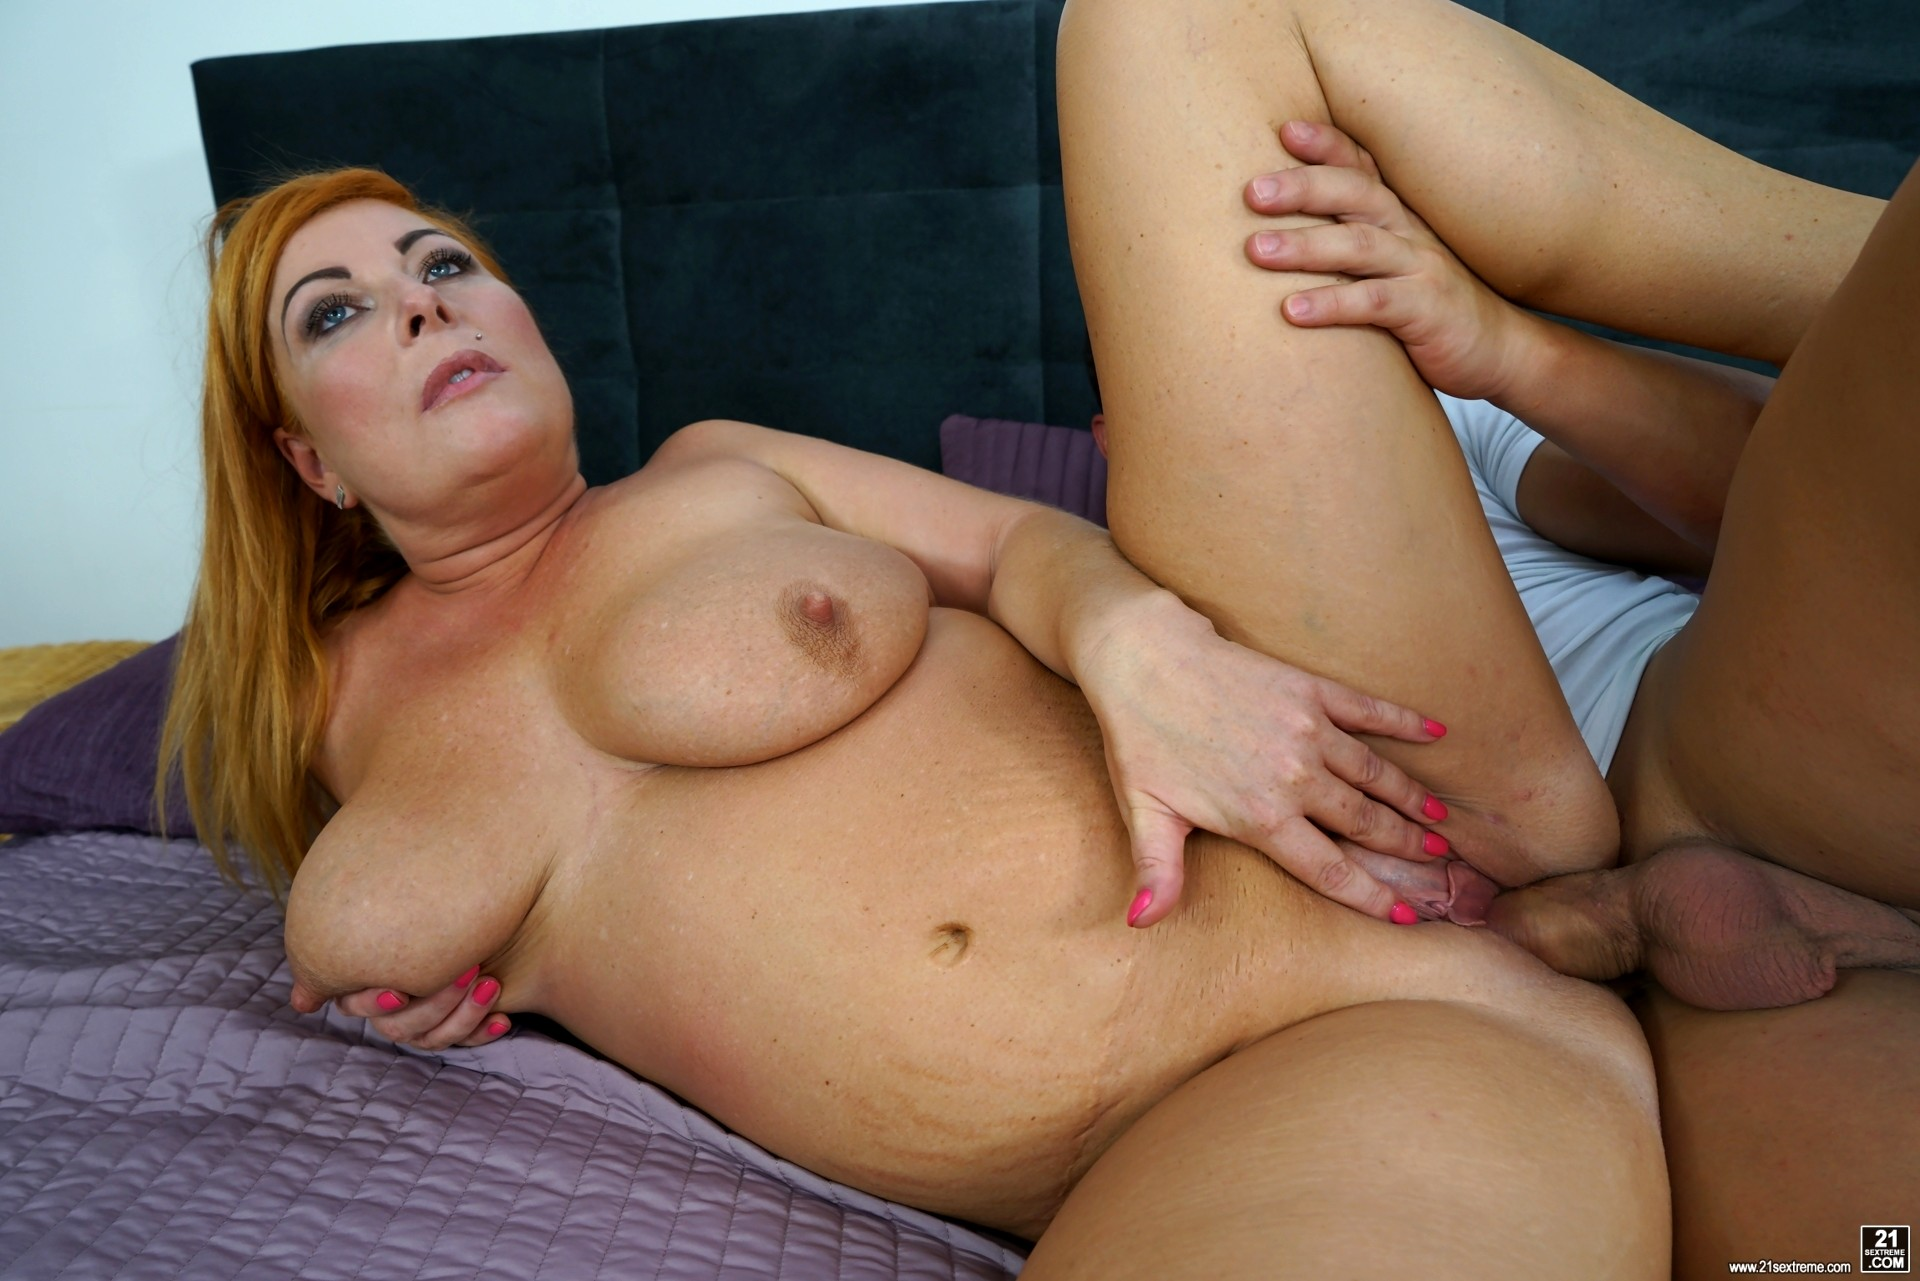 east european porn stars fucking pictures